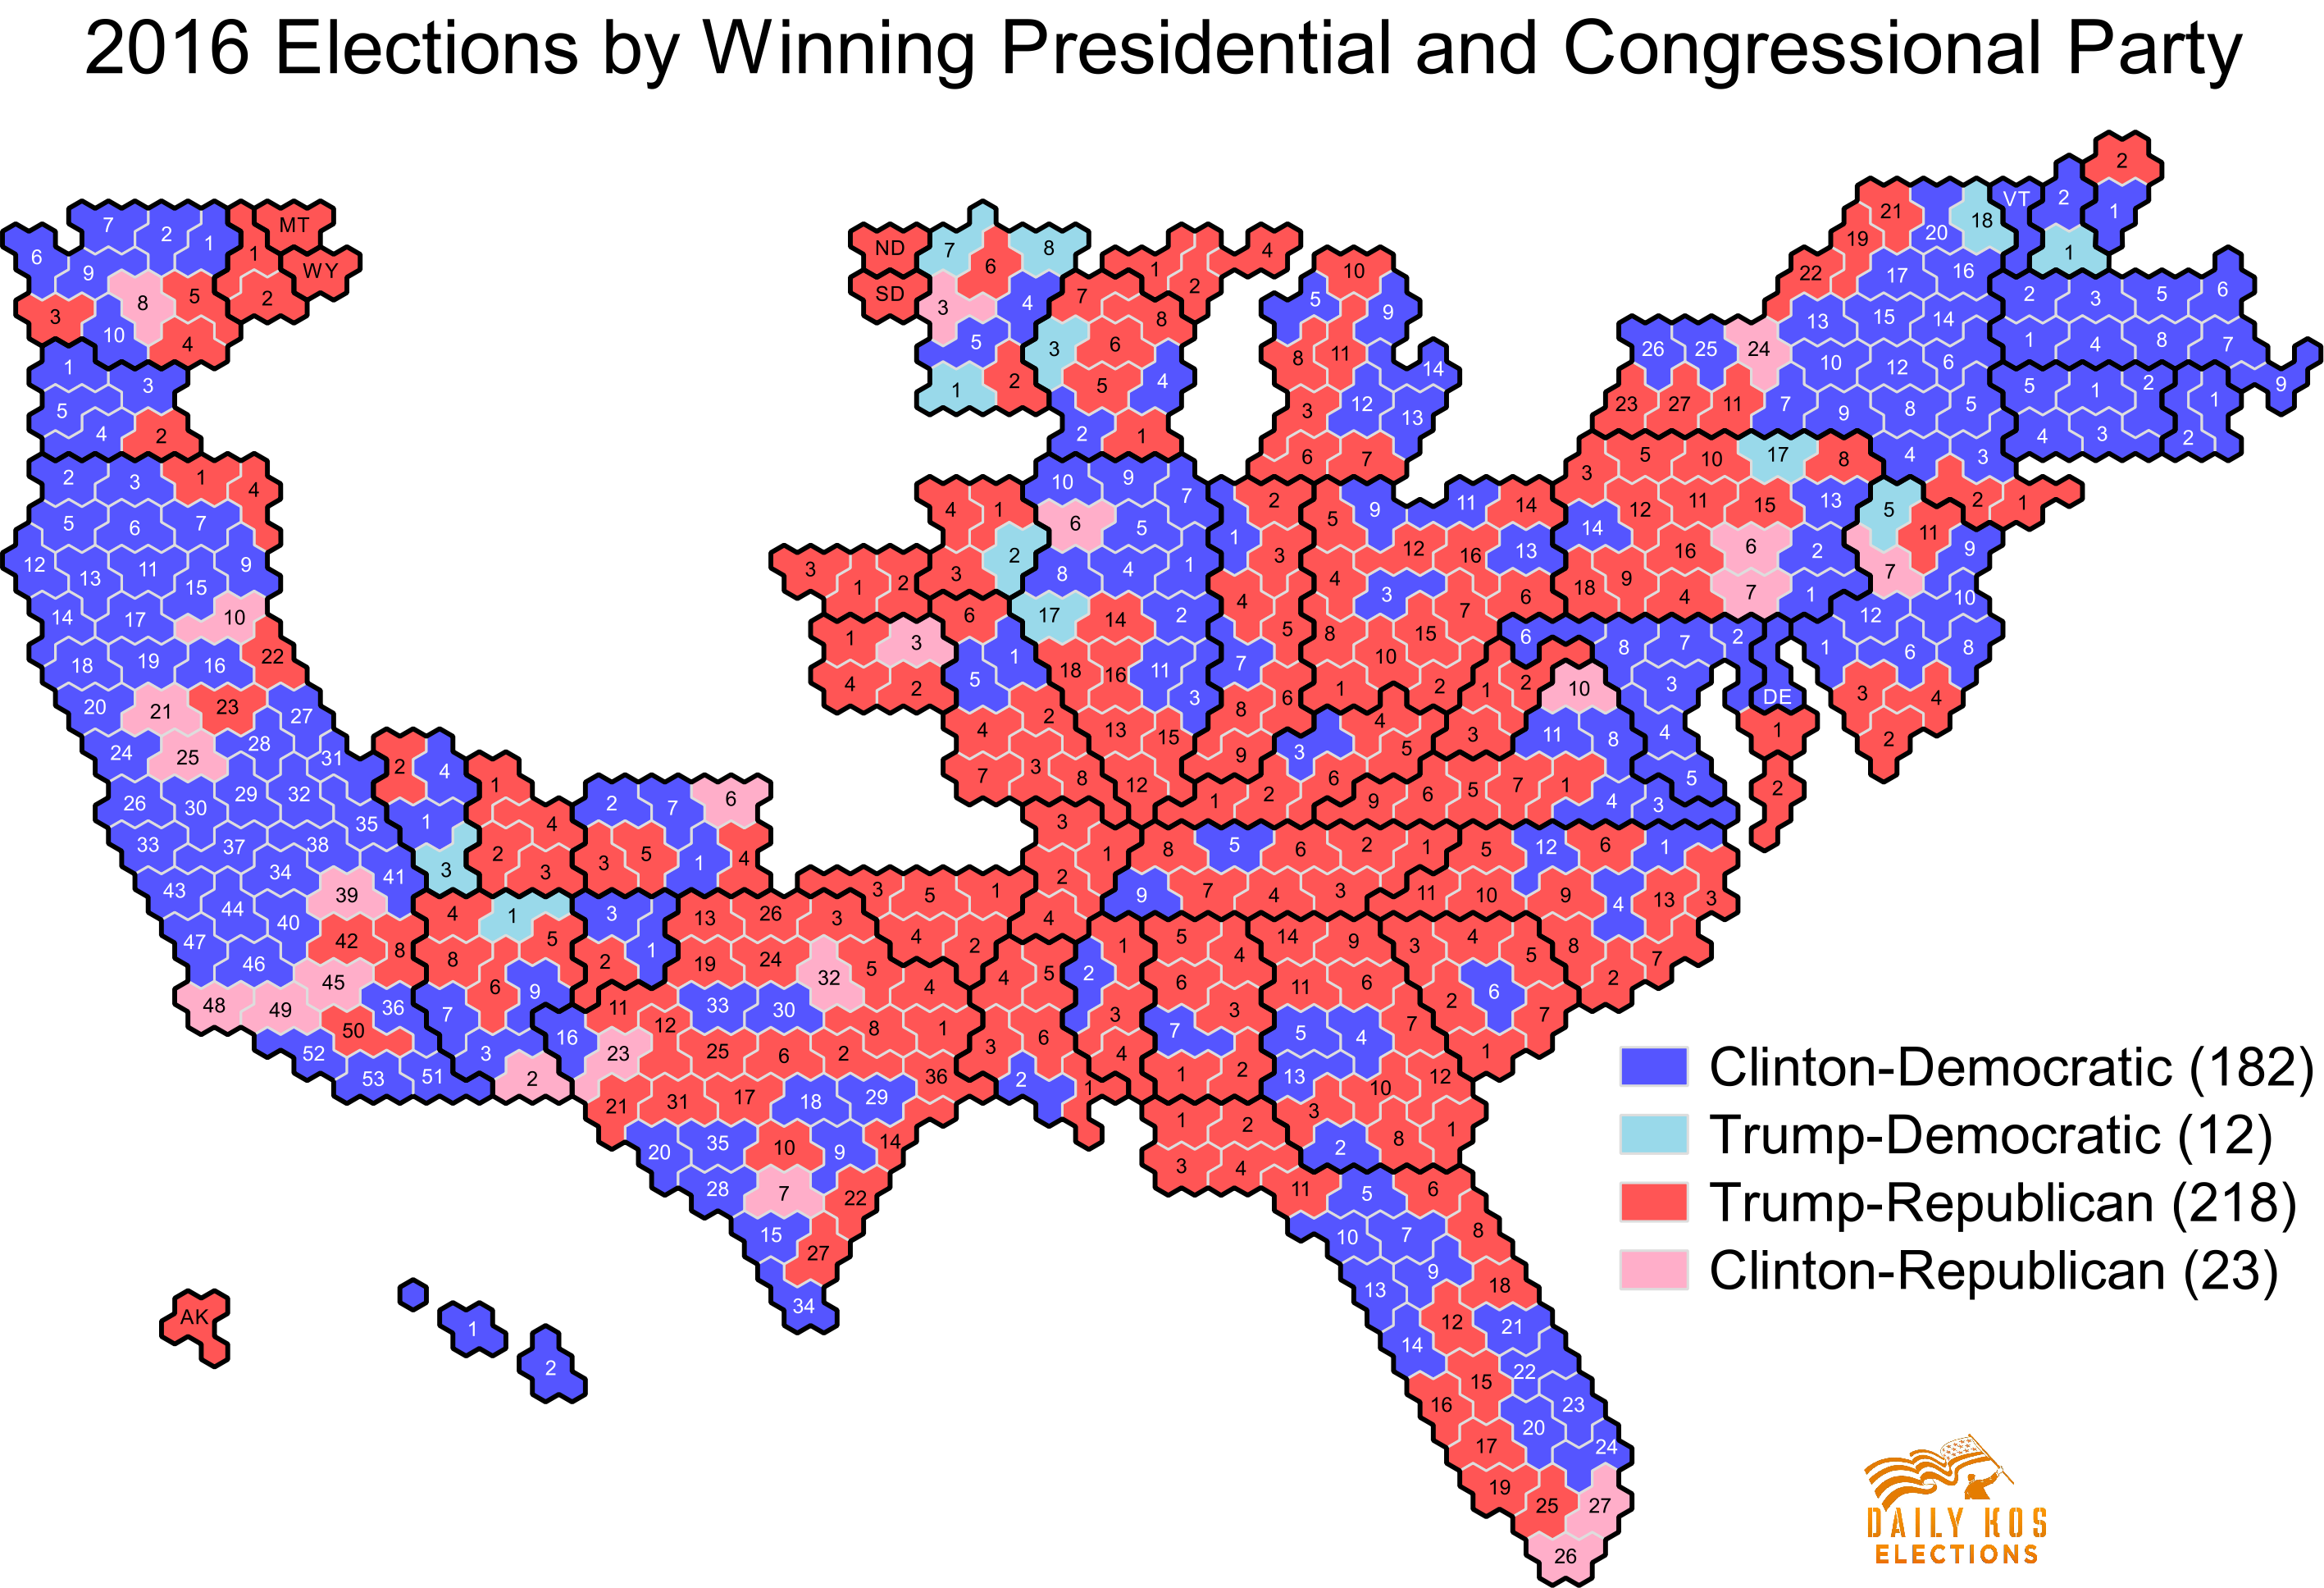 Daily Kos Elections presents the 2016 presidential election